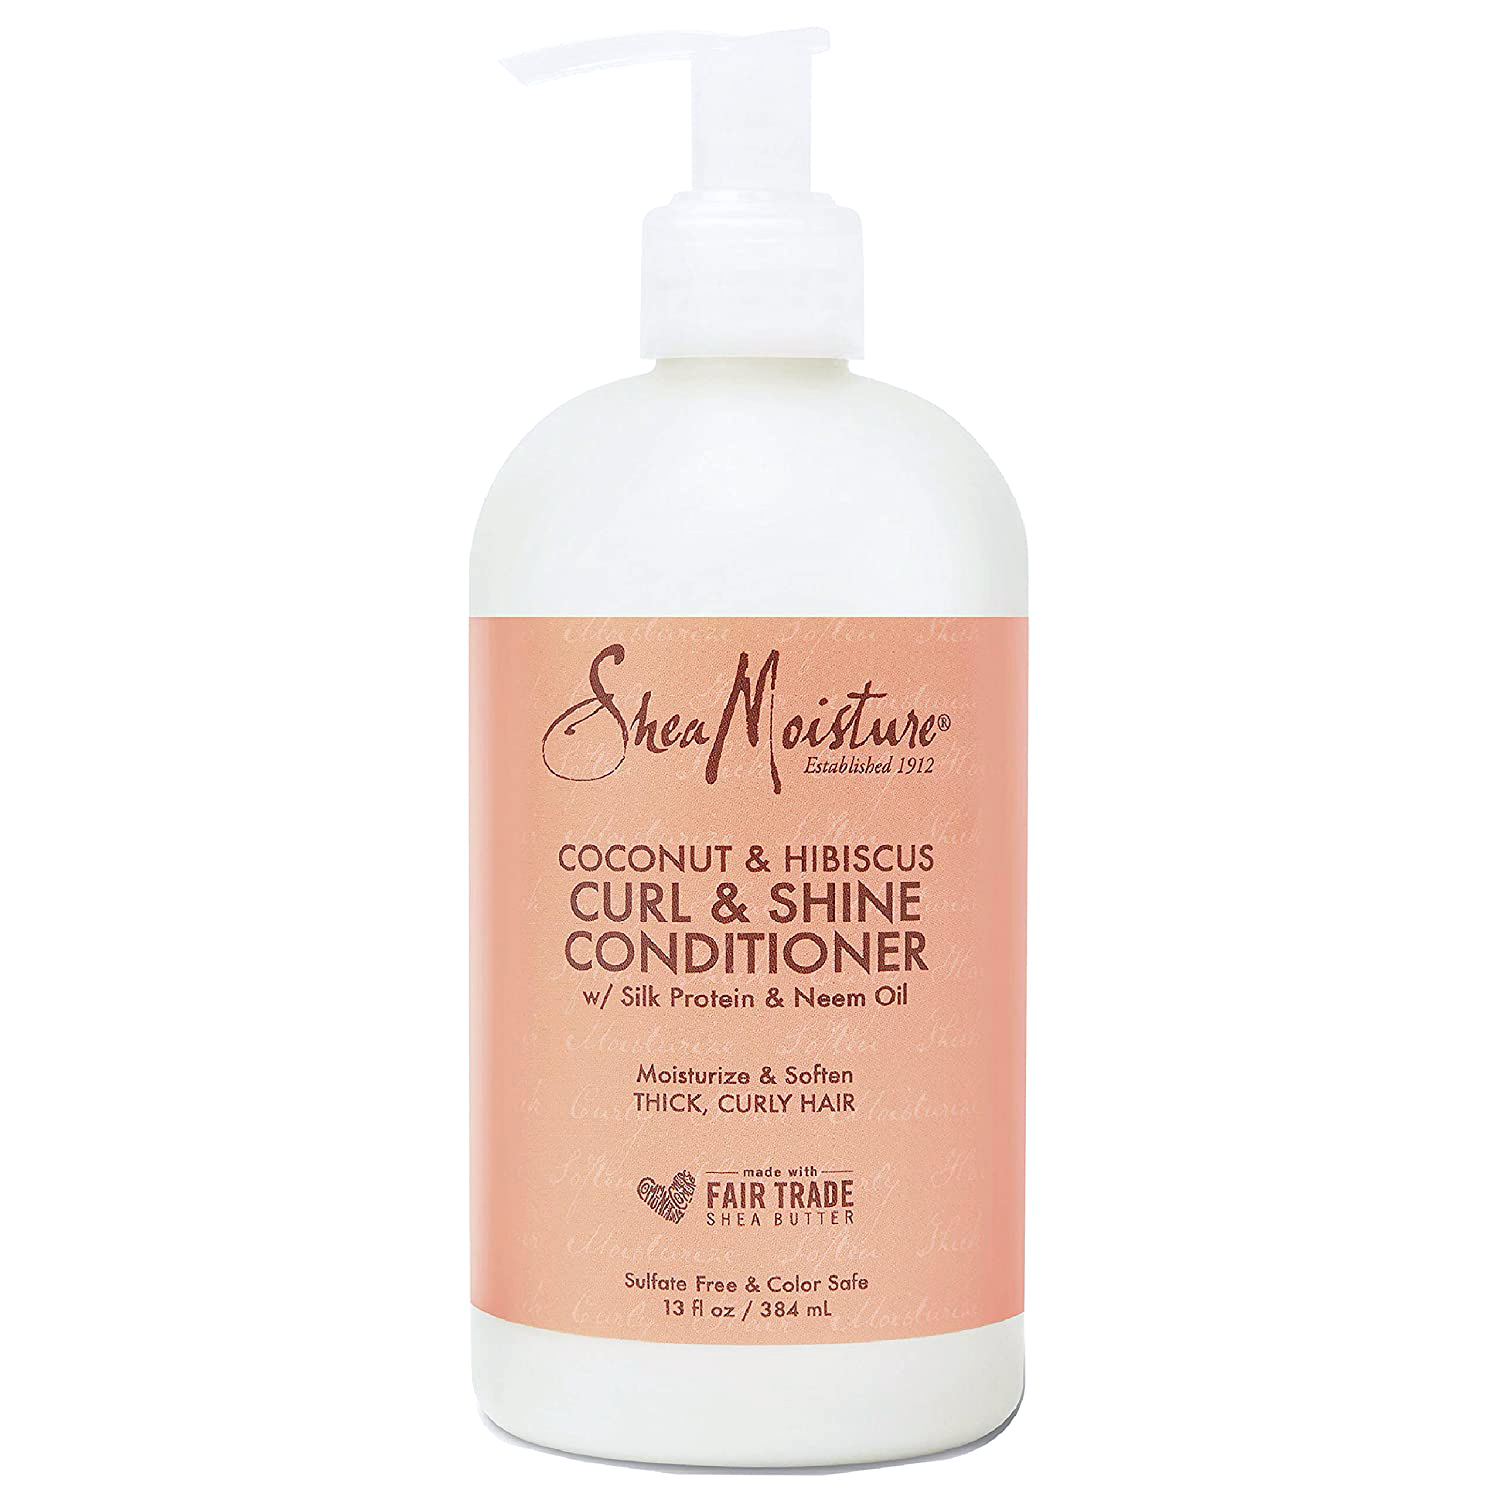 SheaMoisture conditioner